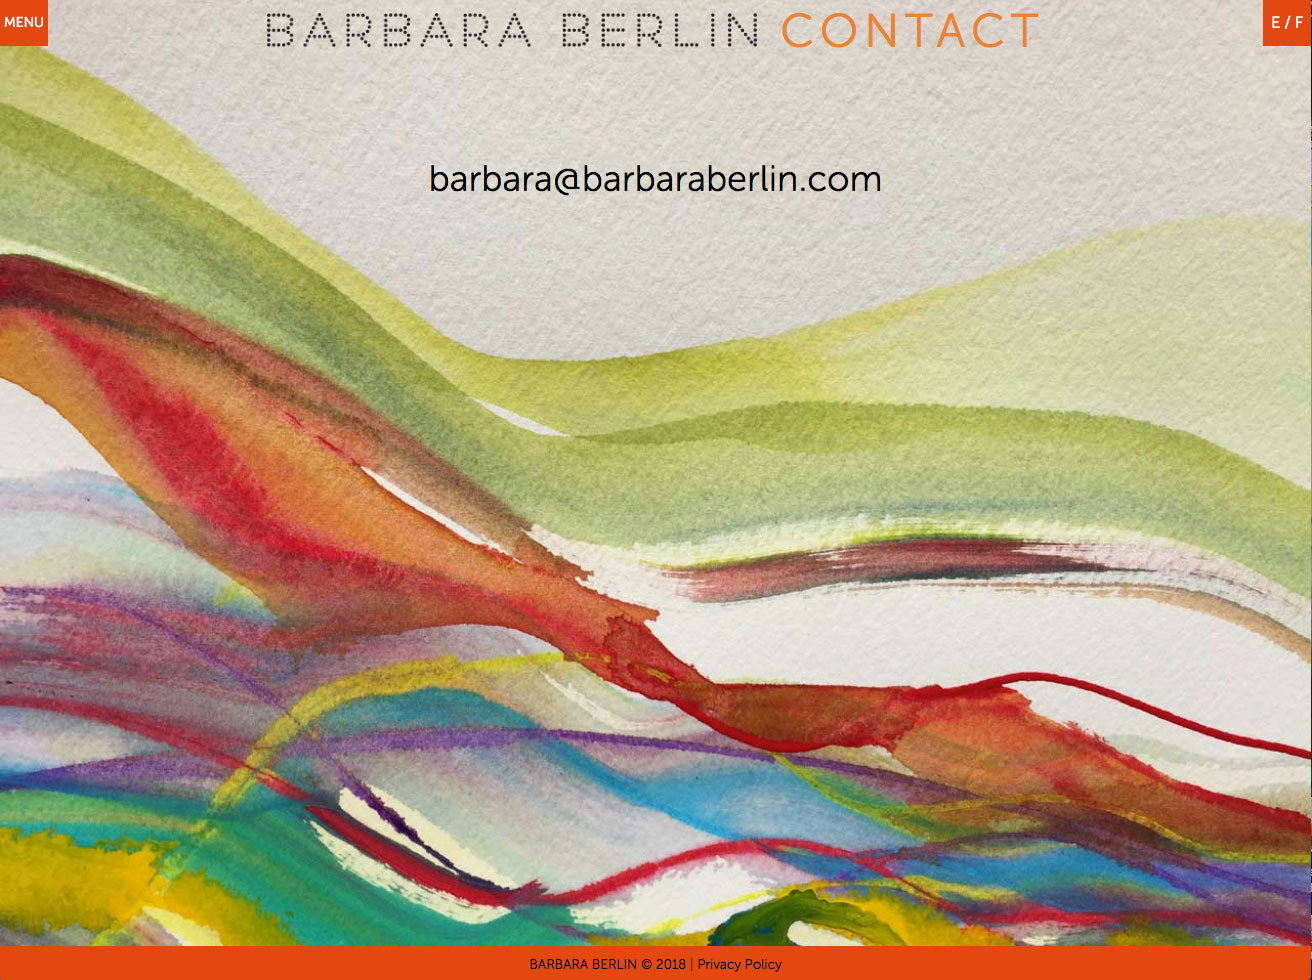 5-BBerlin-Contact